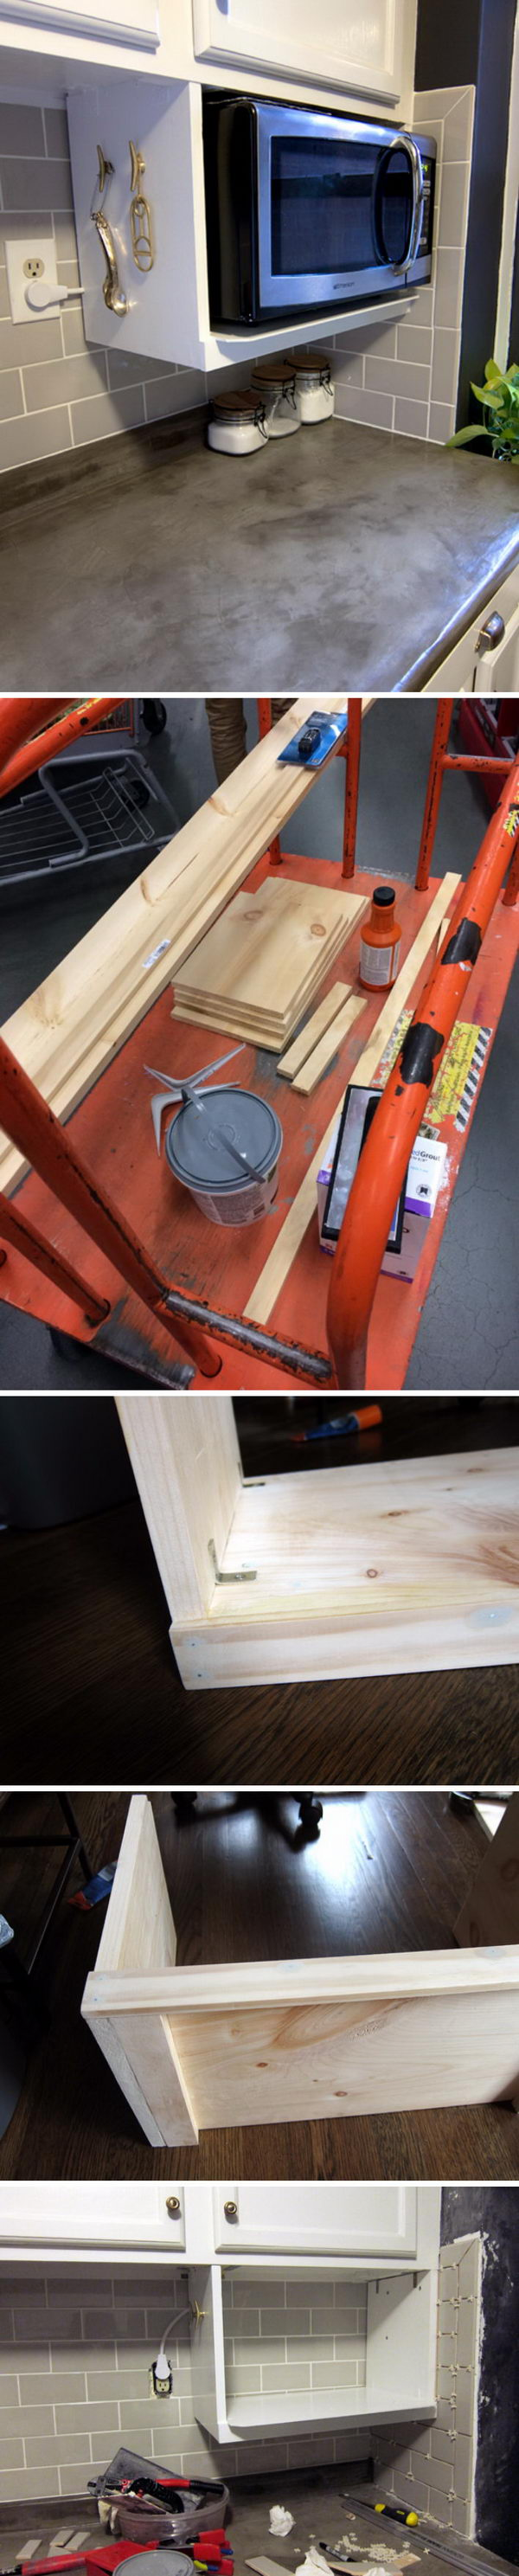 DIY Shelf for Extra Storage Under Kitchen Cabinet.